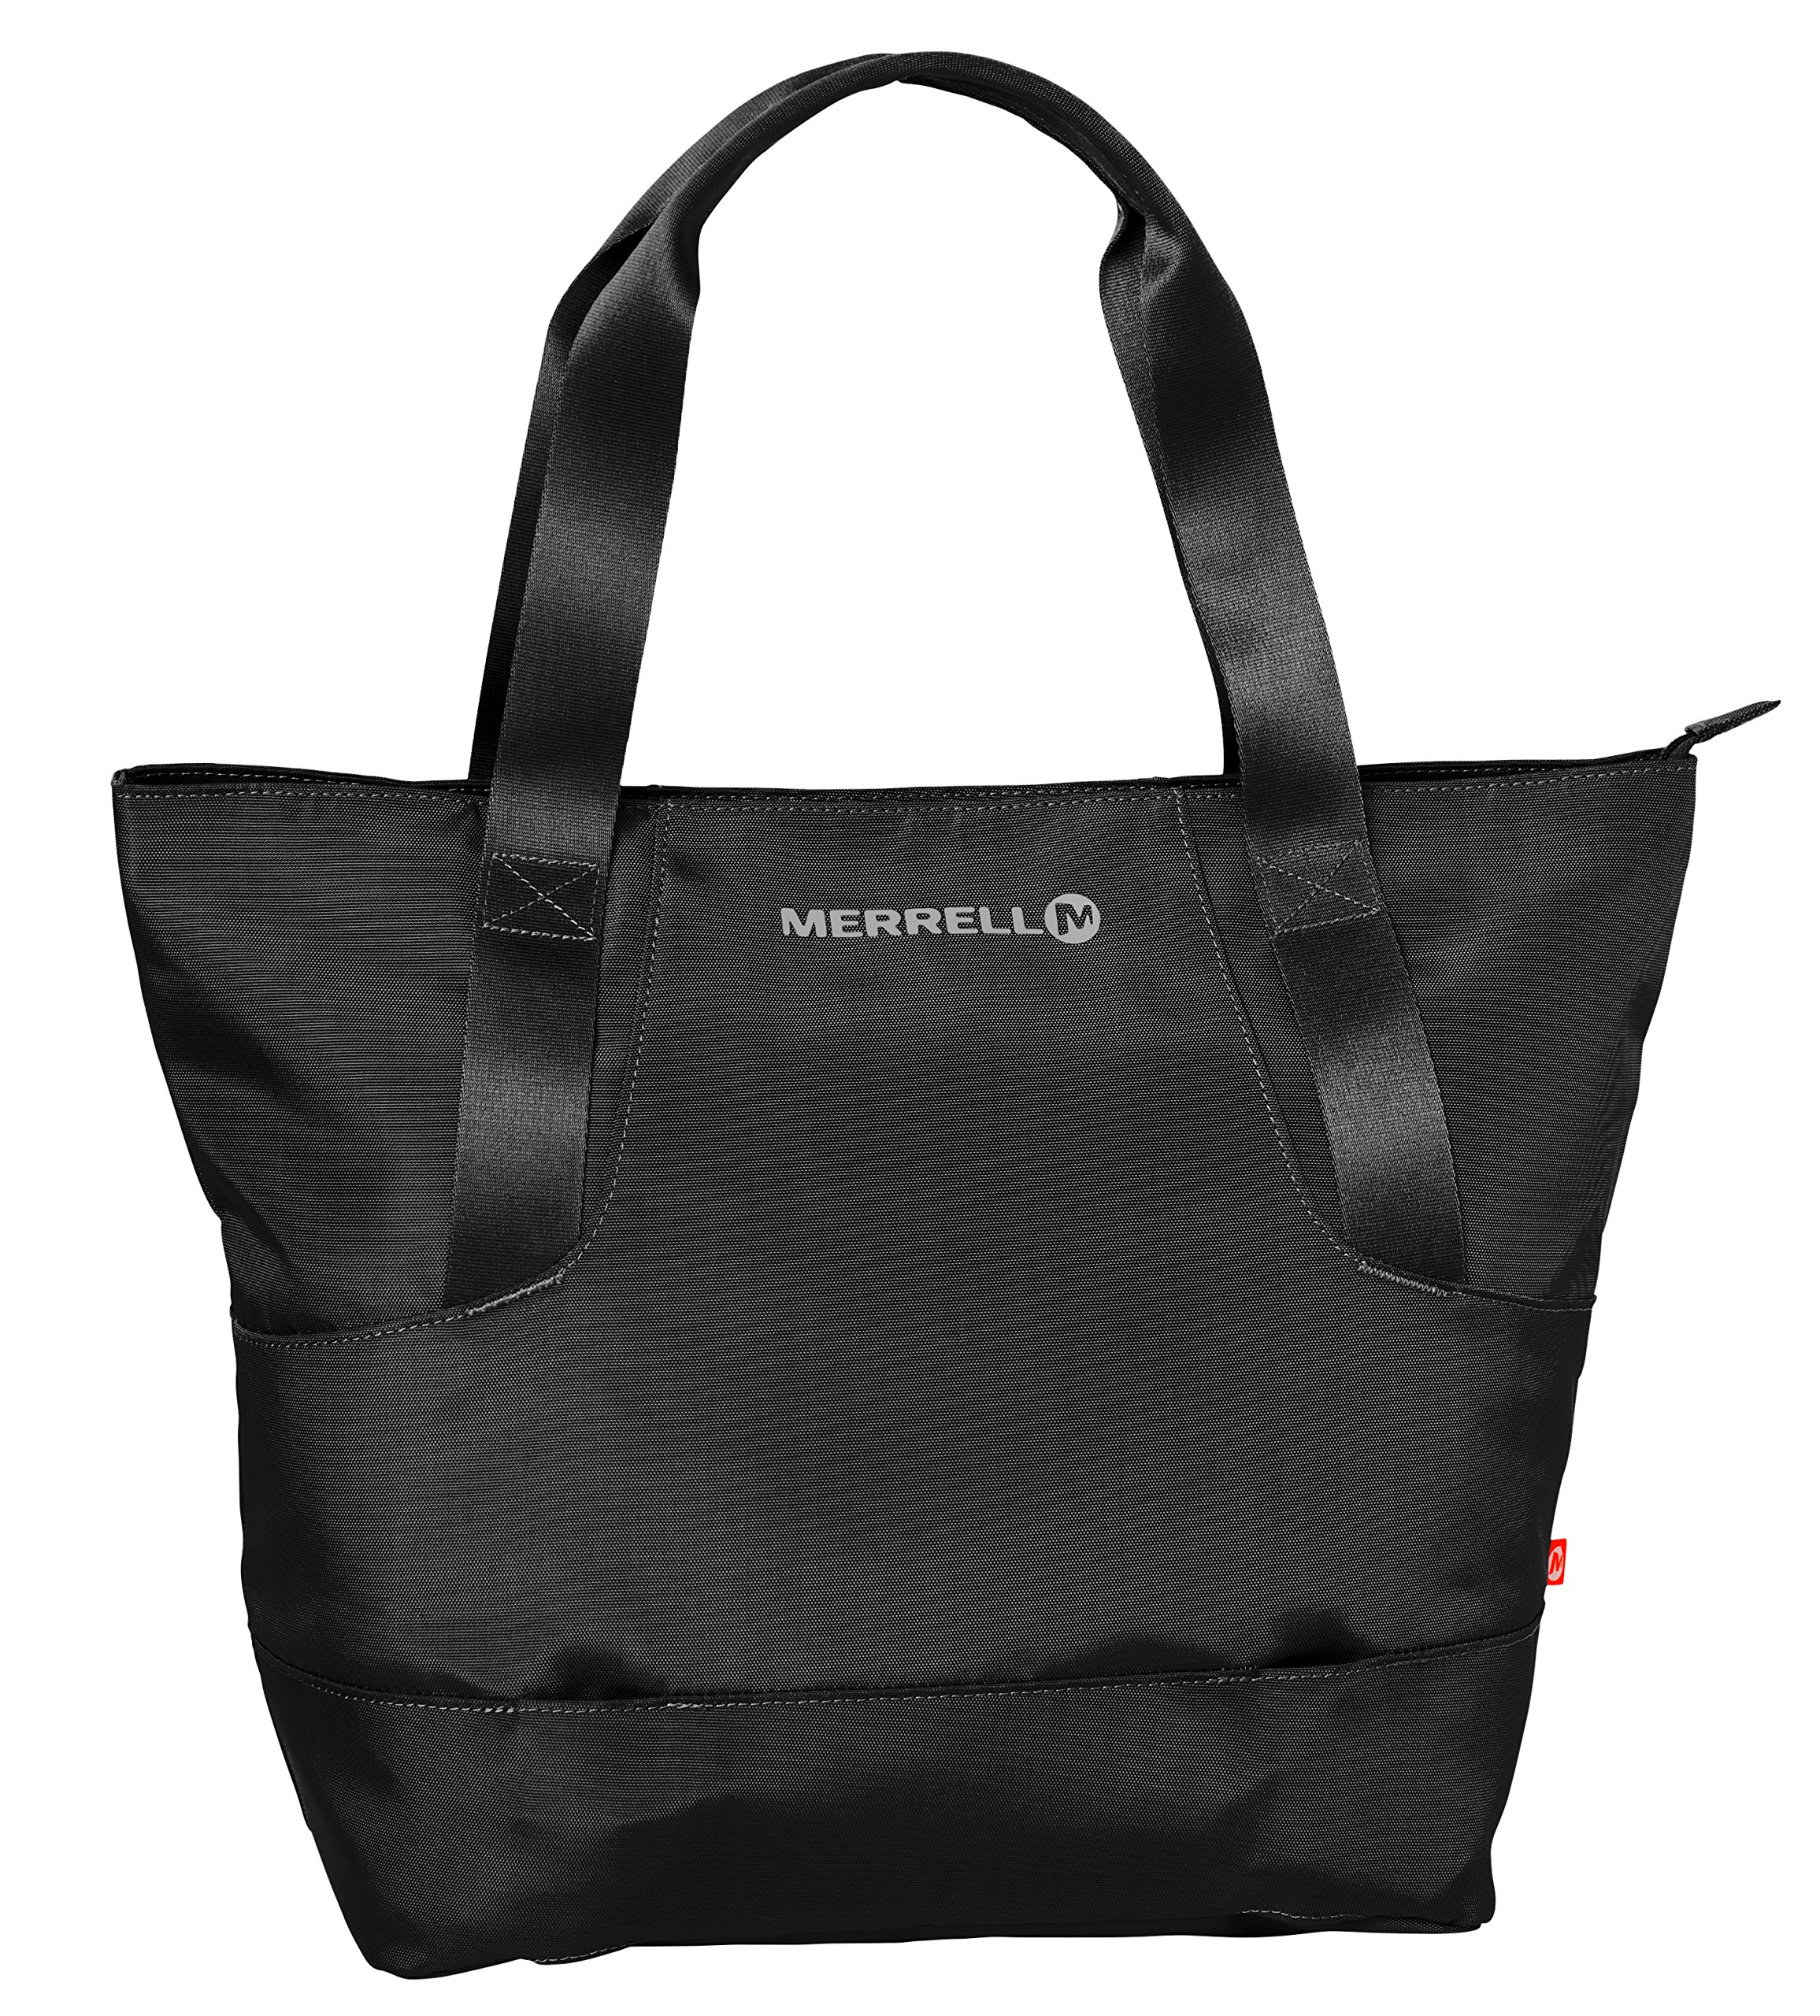 Merrell Delta Tote, Black, One Size by Merrell